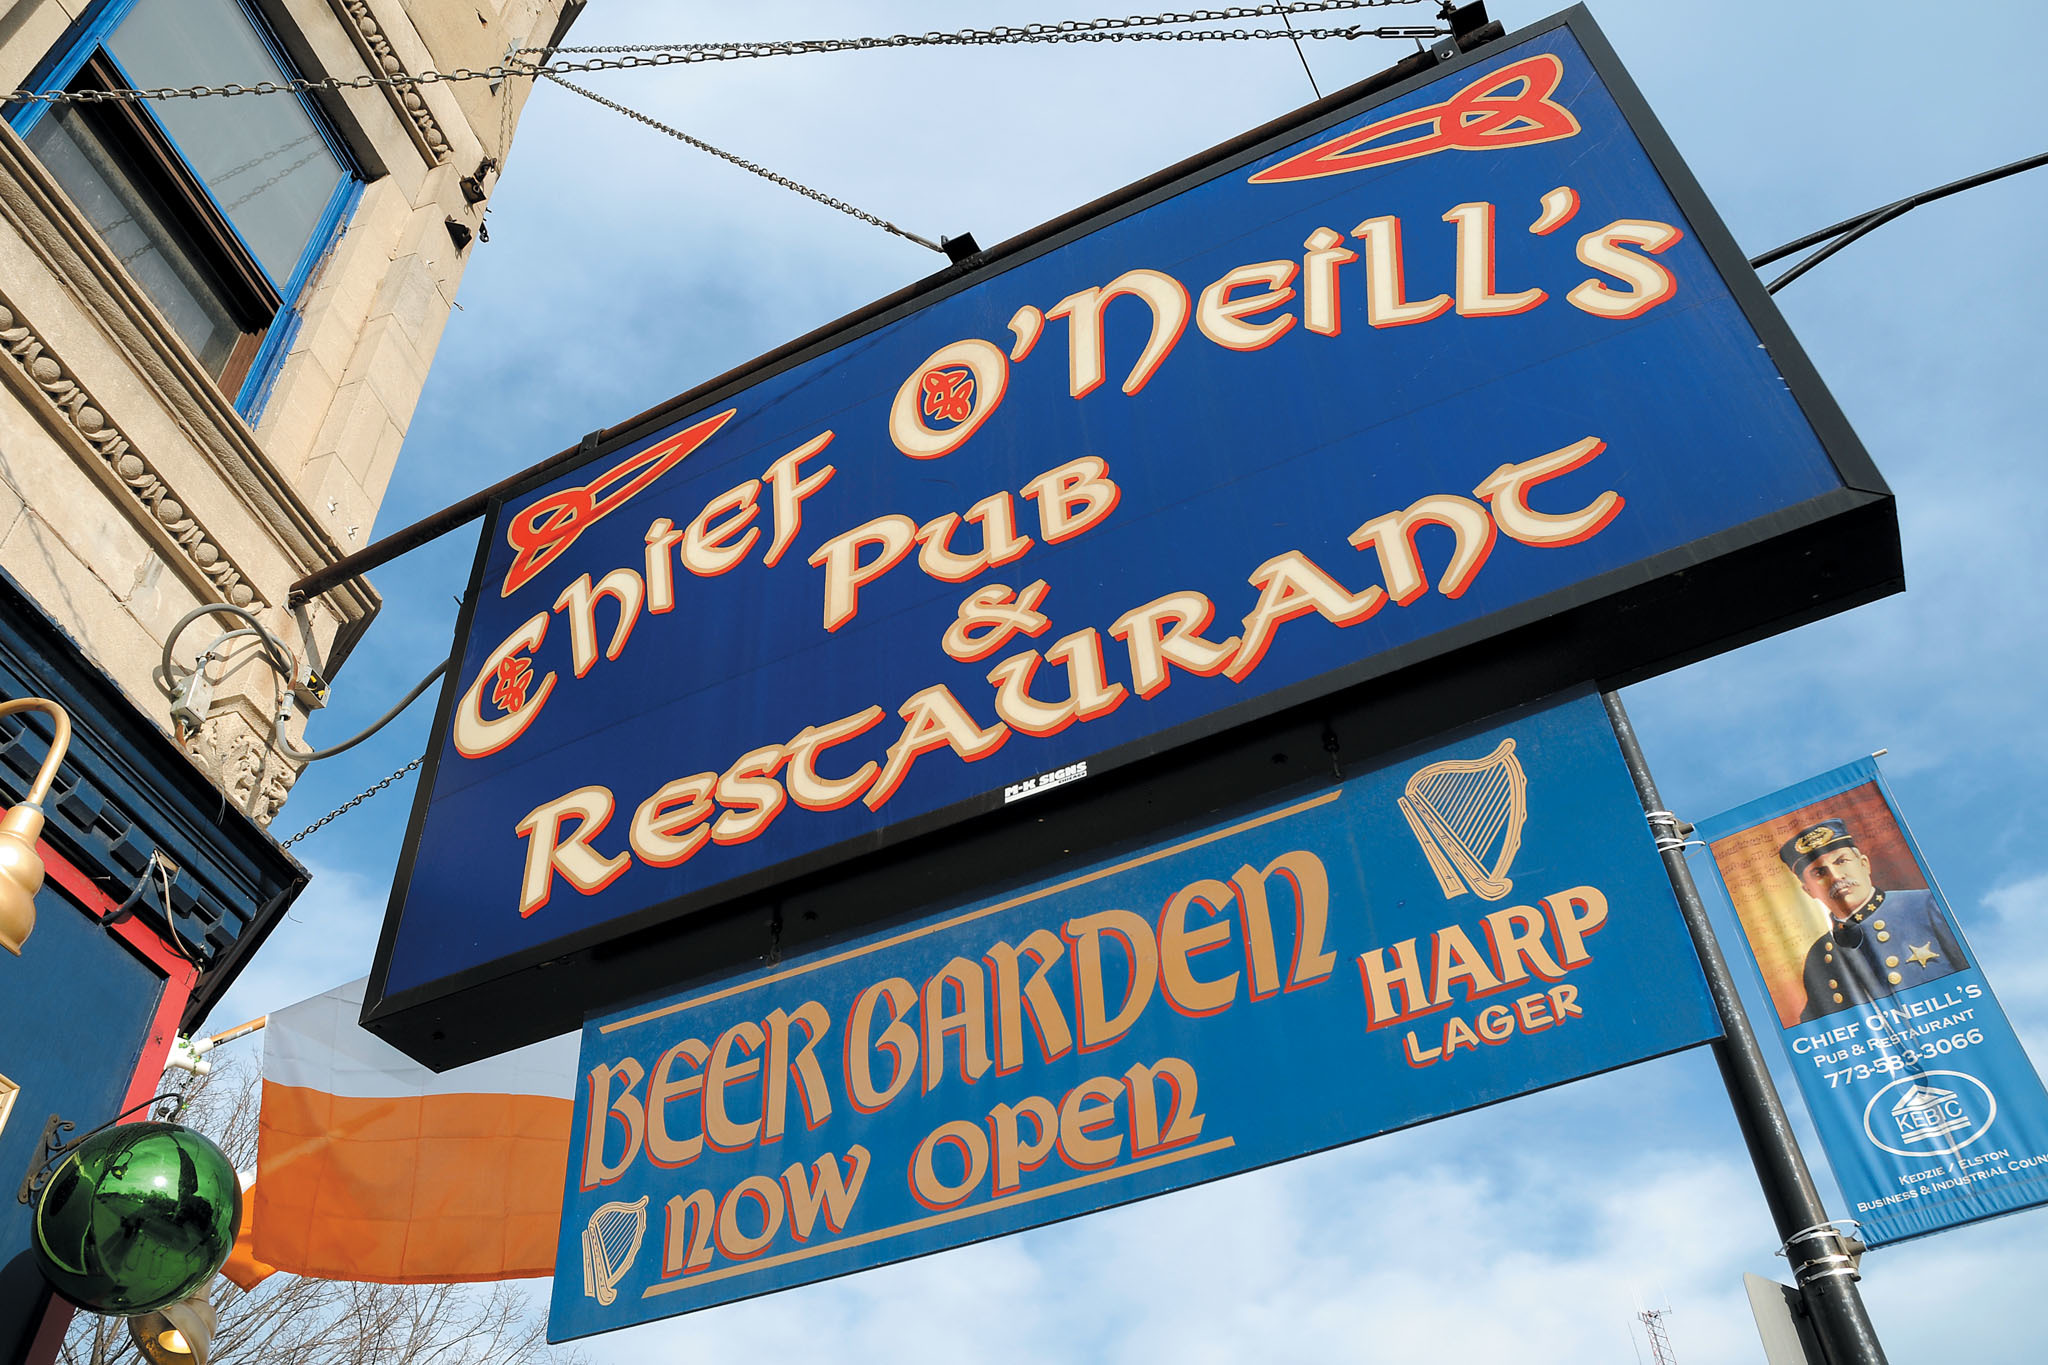 Cheif O'Neill's Pub and Restaurant